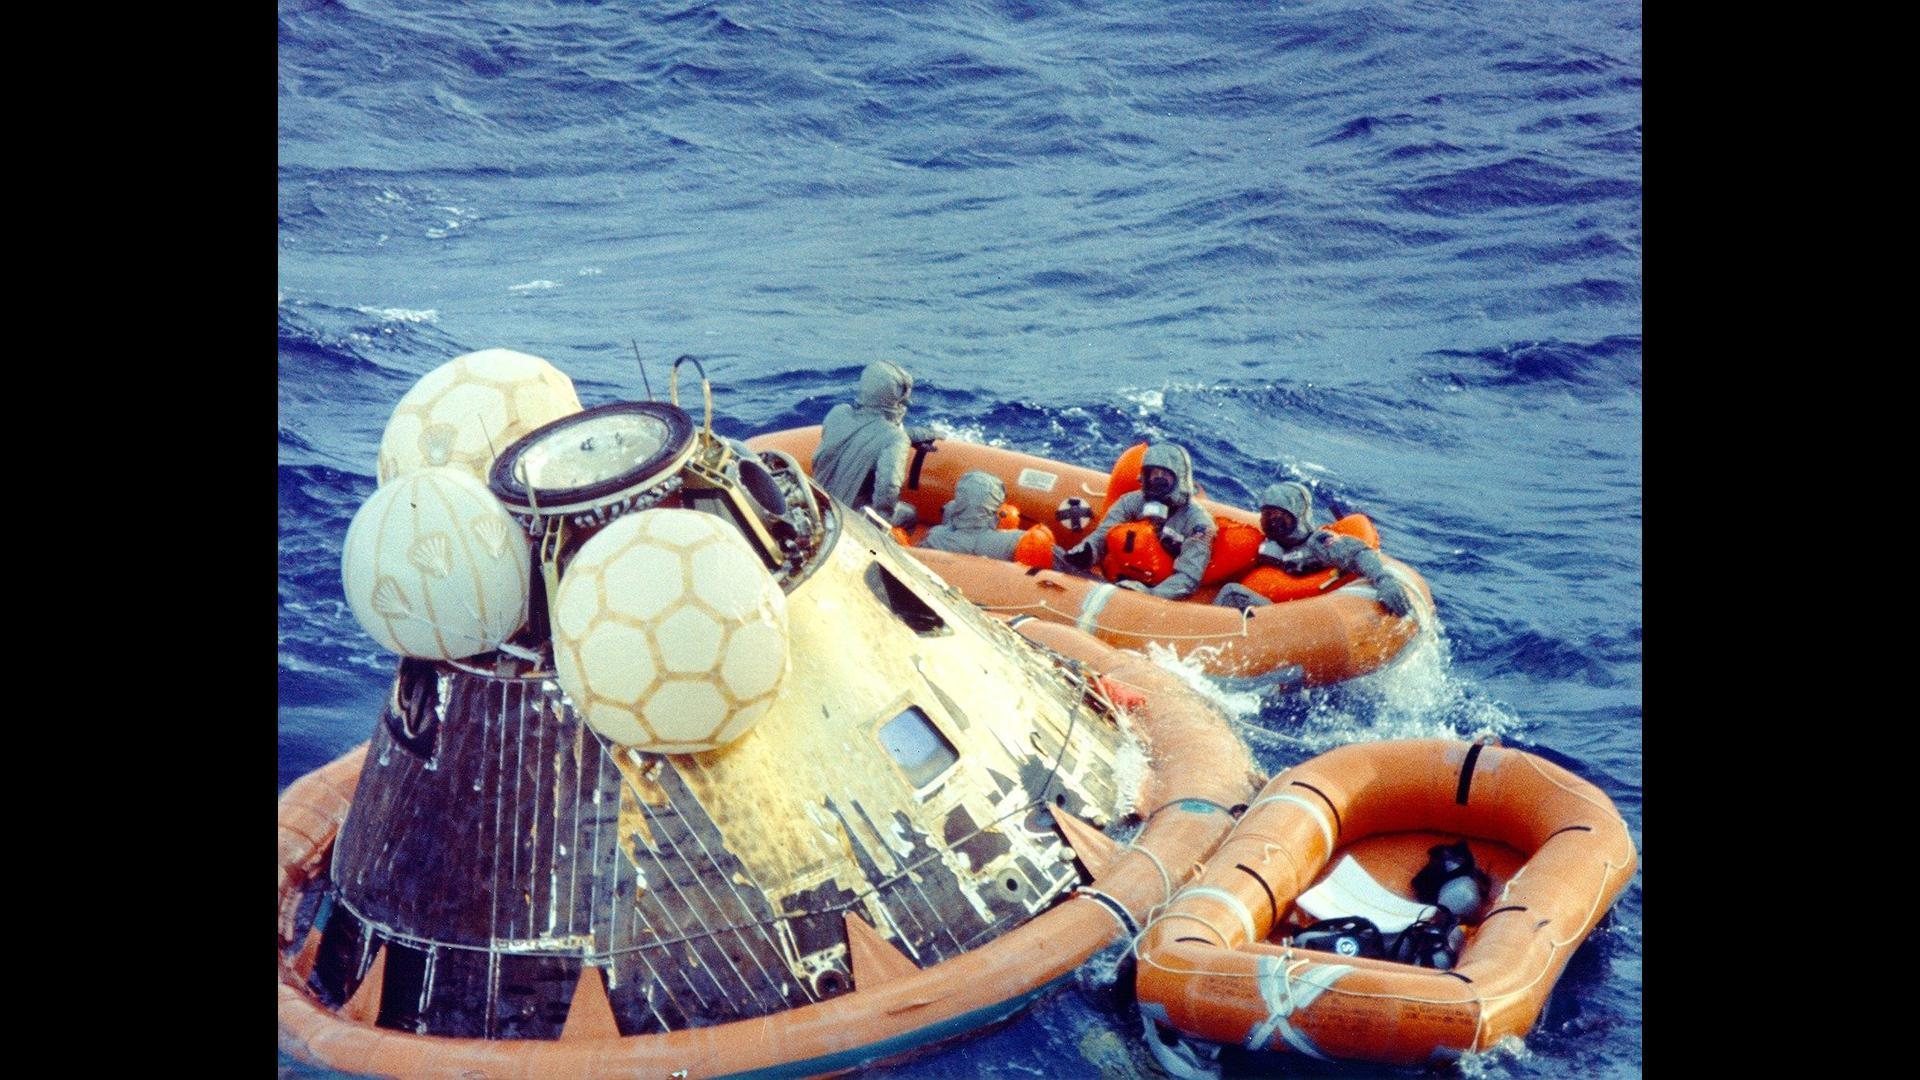 The Apollo 11 Command Module with the three astronauts on board splashed down in the western Pacific Ocean.